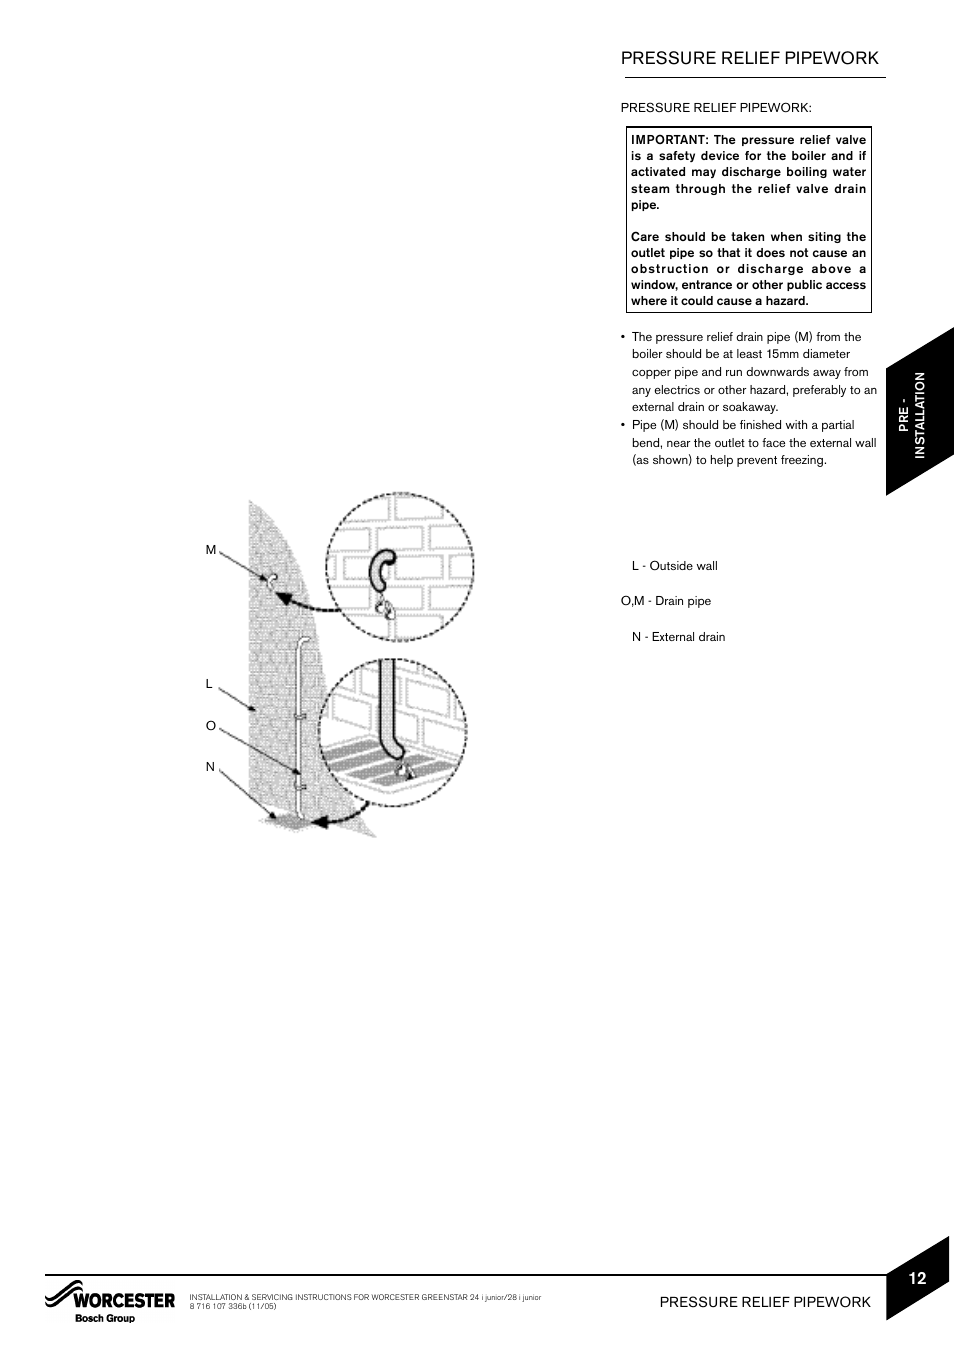 Pressure relief pipework bosch greenstar 24i junior user manual pressure relief pipework bosch greenstar 24i junior user manual page 13 62 cheapraybanclubmaster Image collections